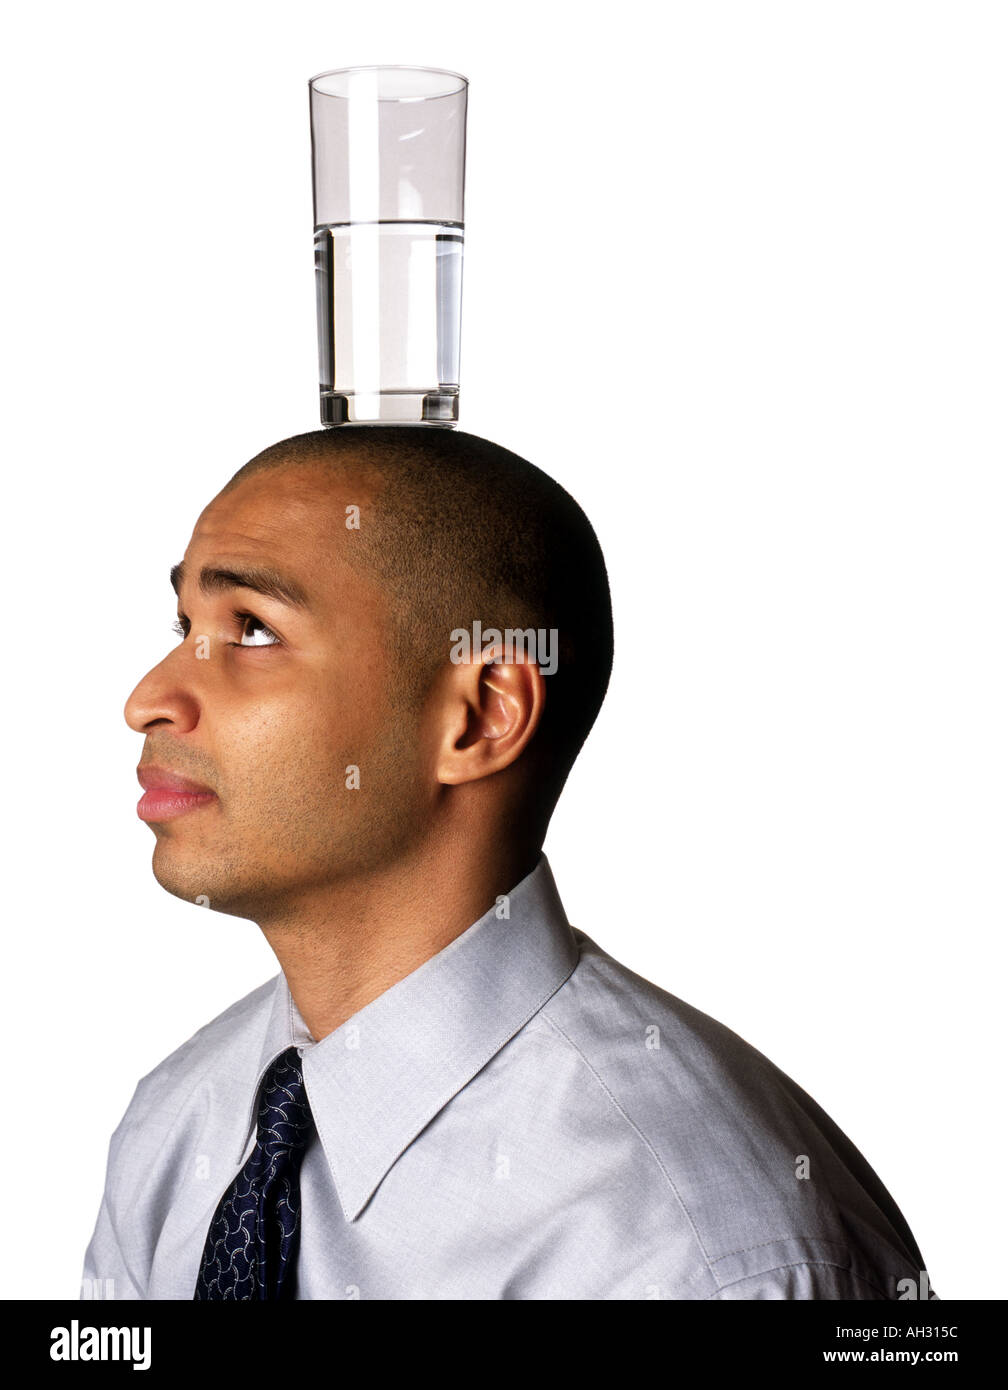 African American Man with glass of water on head - Stock Image